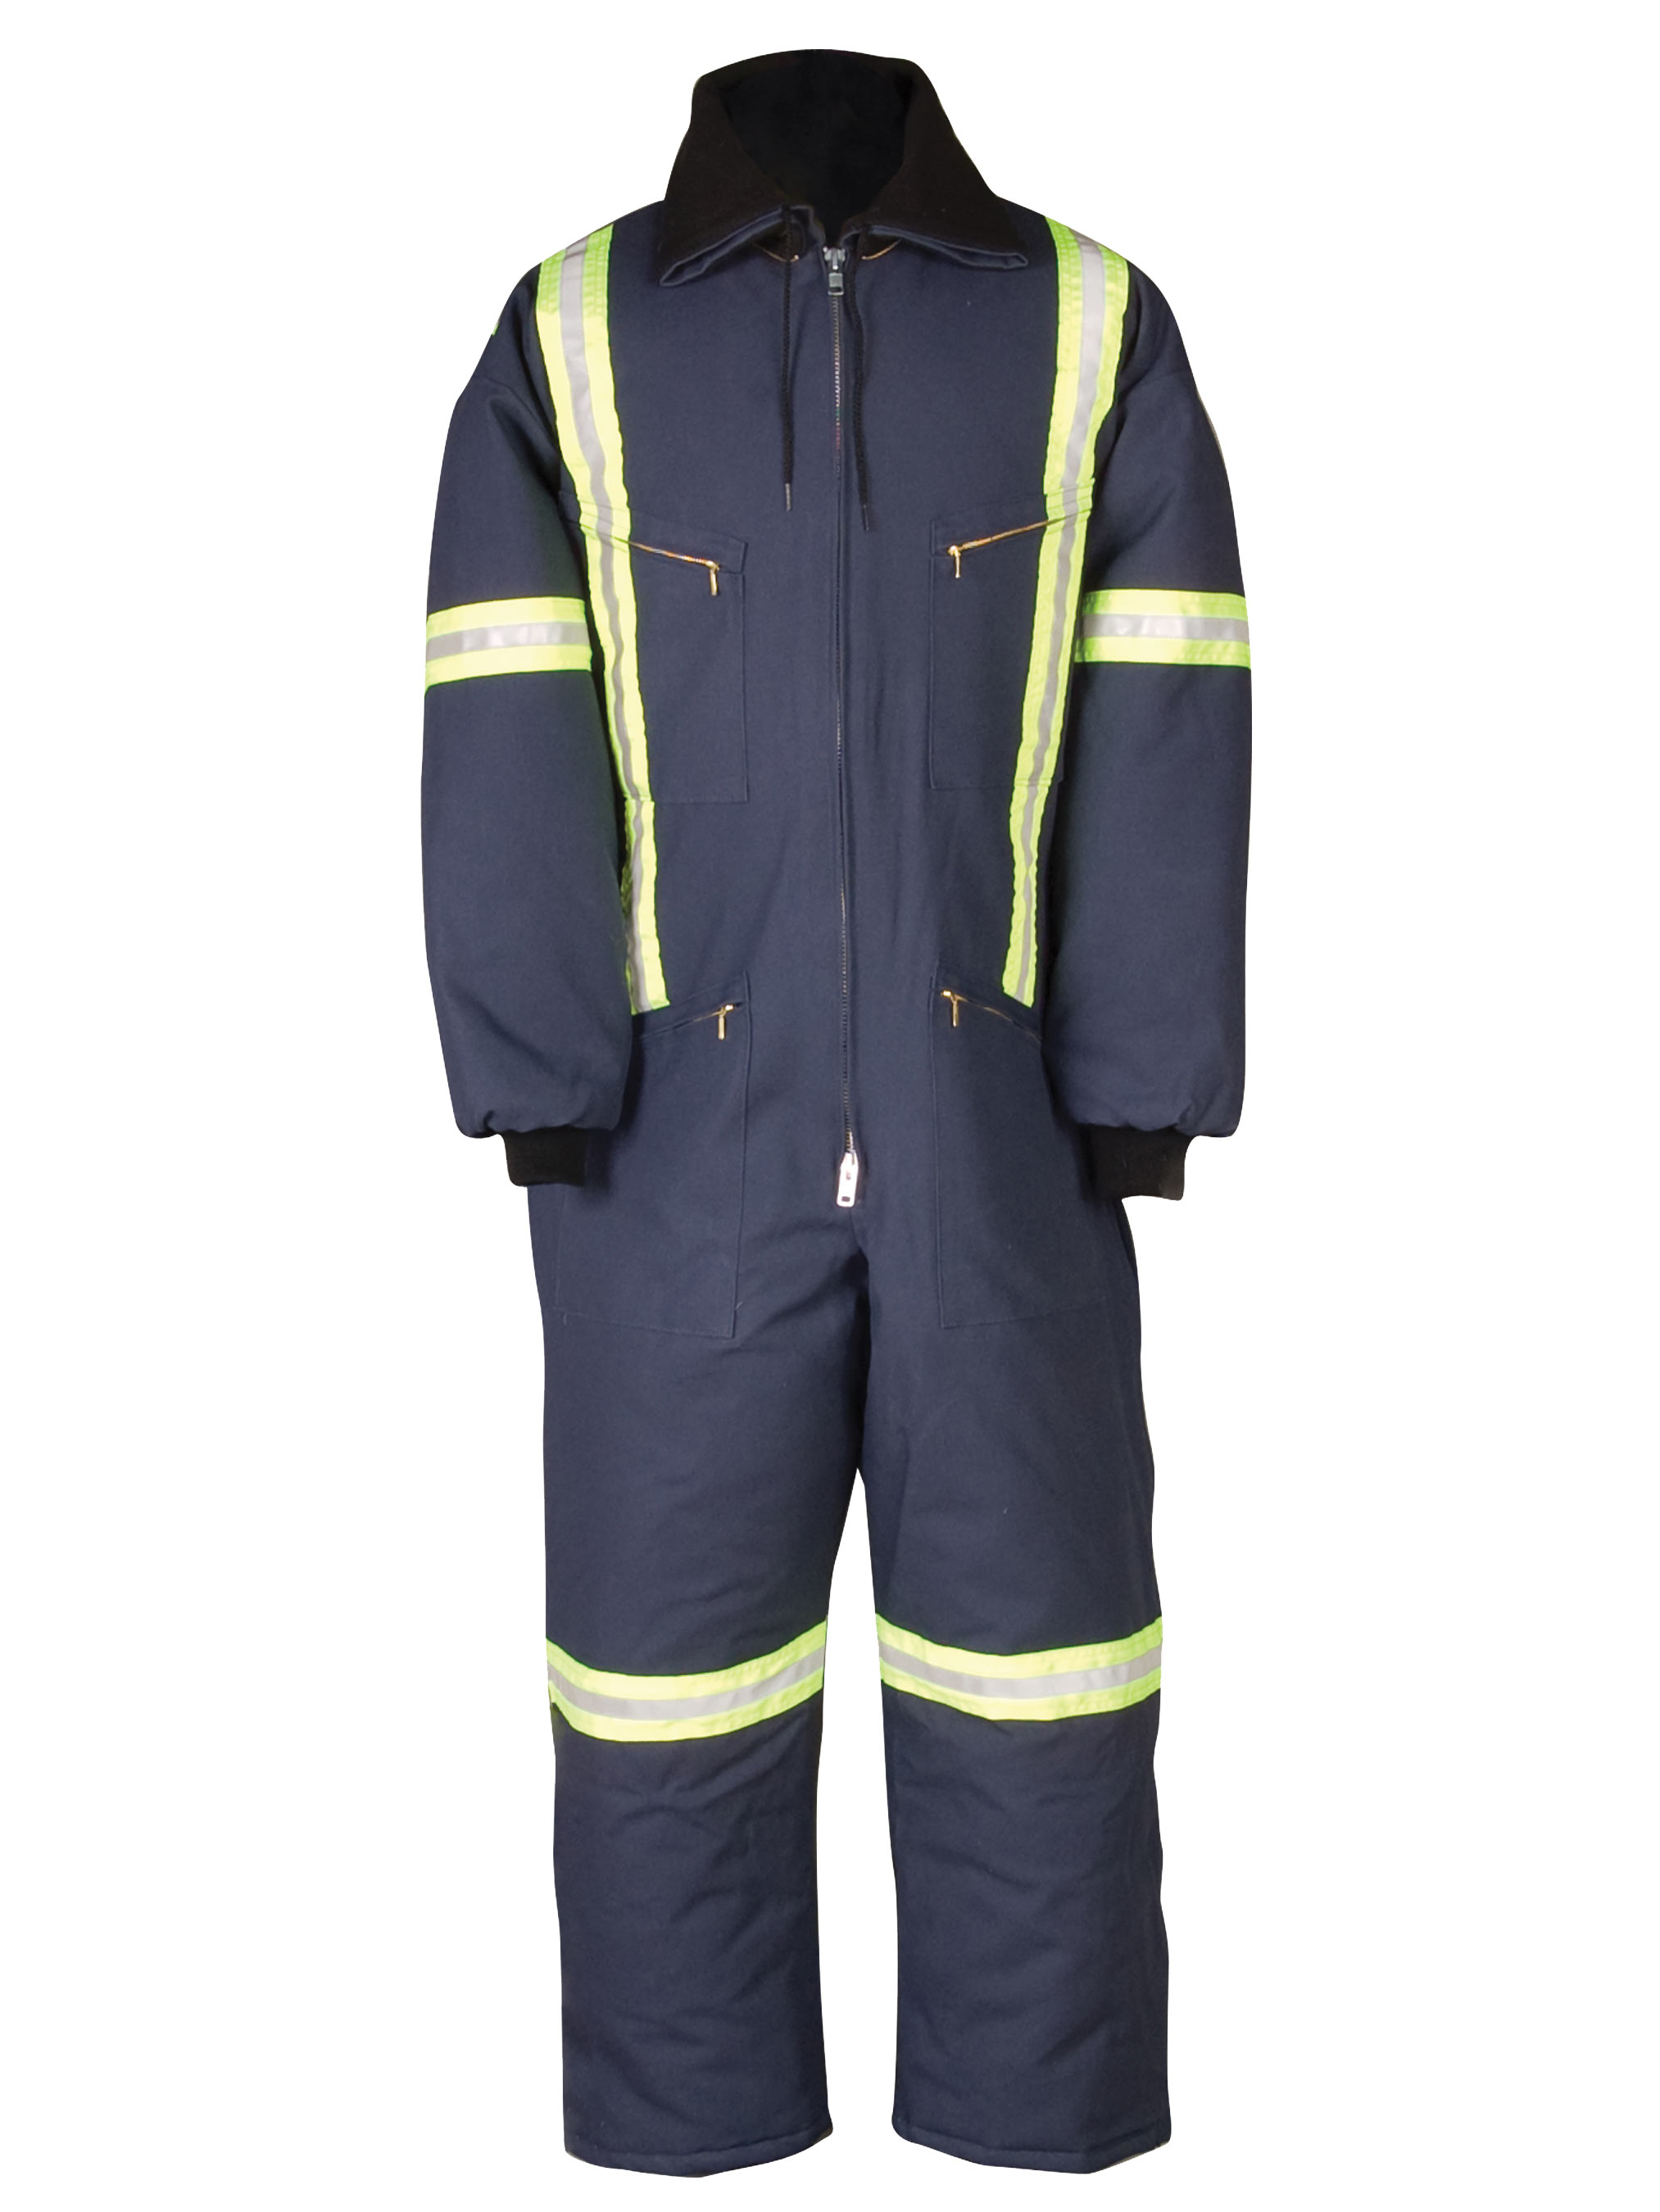 Big bill enhanced visibility insulated duck coverall 804rt for 6 dollar shirts coupon code free shipping